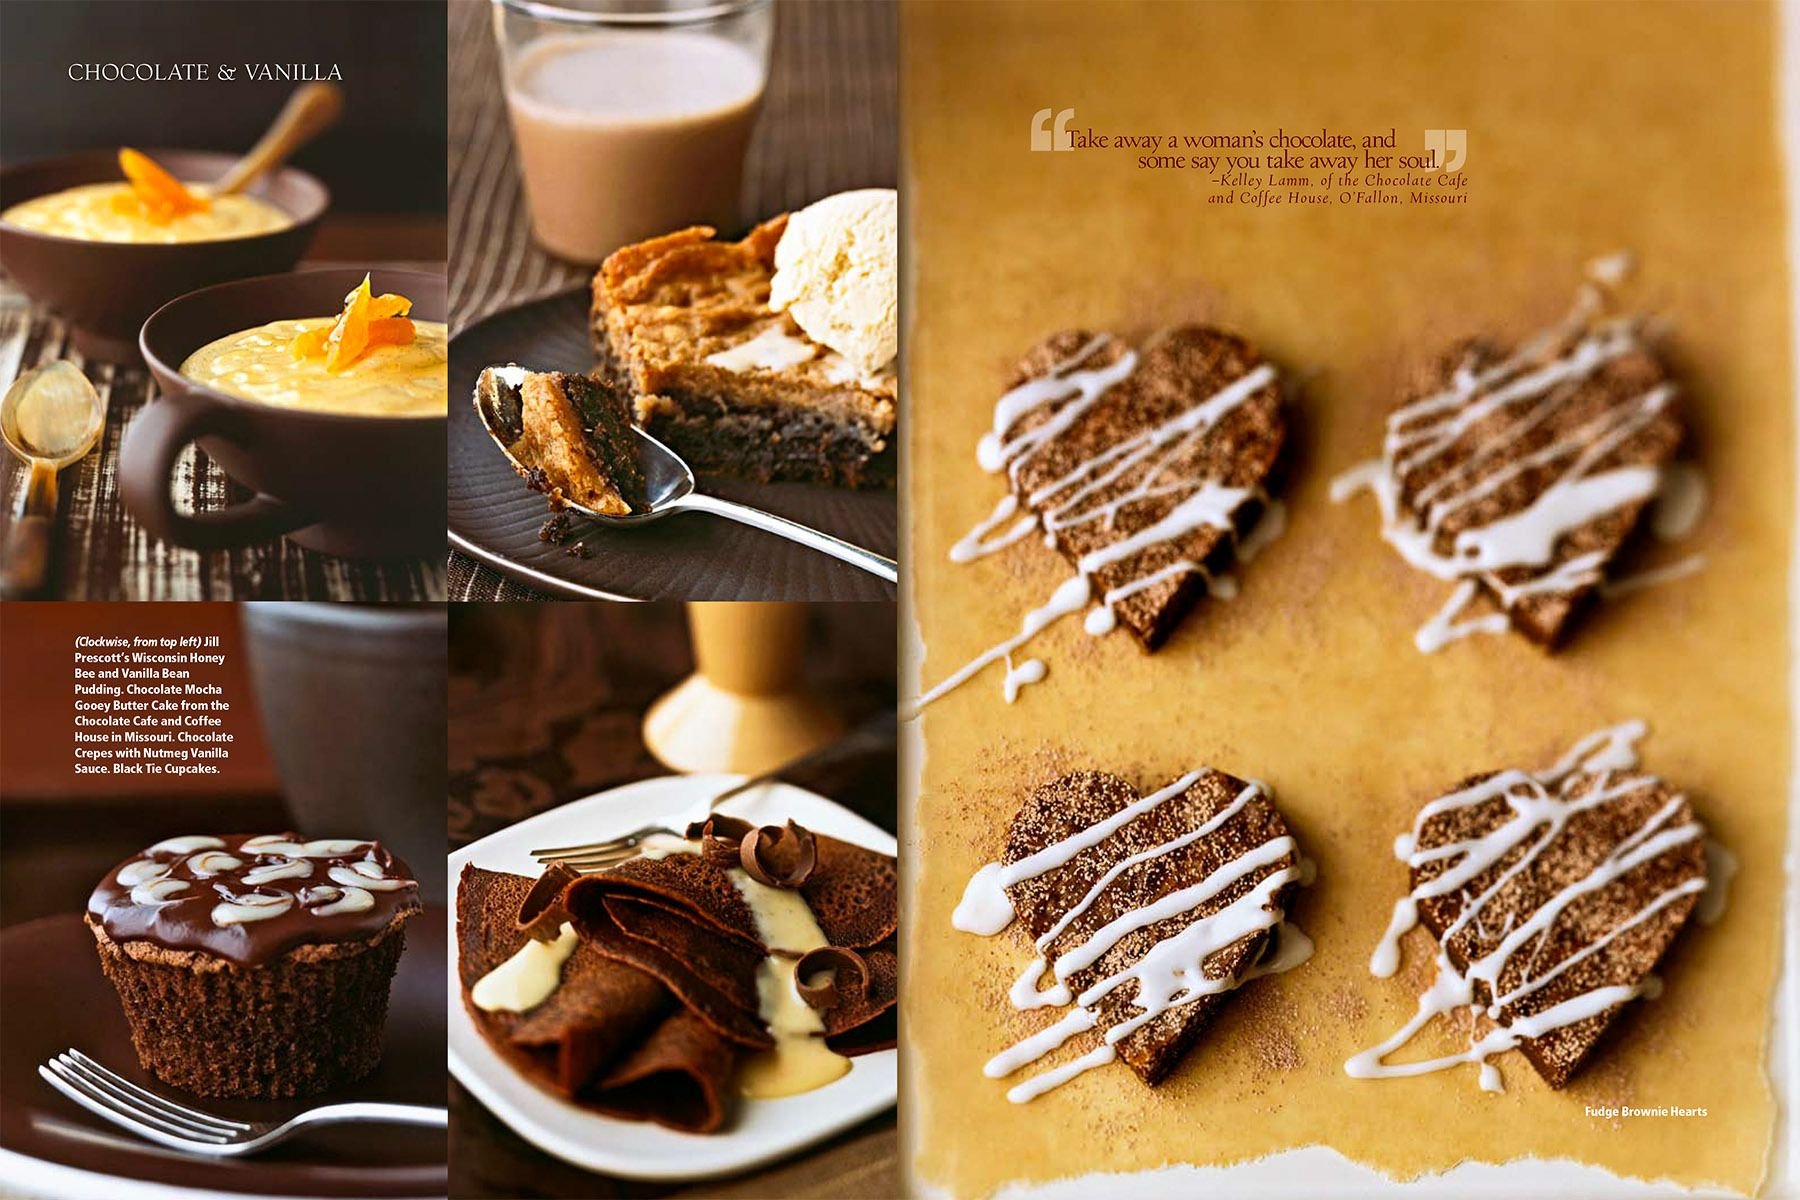 Vanilla pudding with candied apricots, chocolate frosted muffin, chocolate crepes with vanilla cream topping, heart shaped cookies with drizzled frosting on parchment for  Chocolate & Vanilla story for Midwest Living Magazinewww.rkjacobs.comTop Food Photog